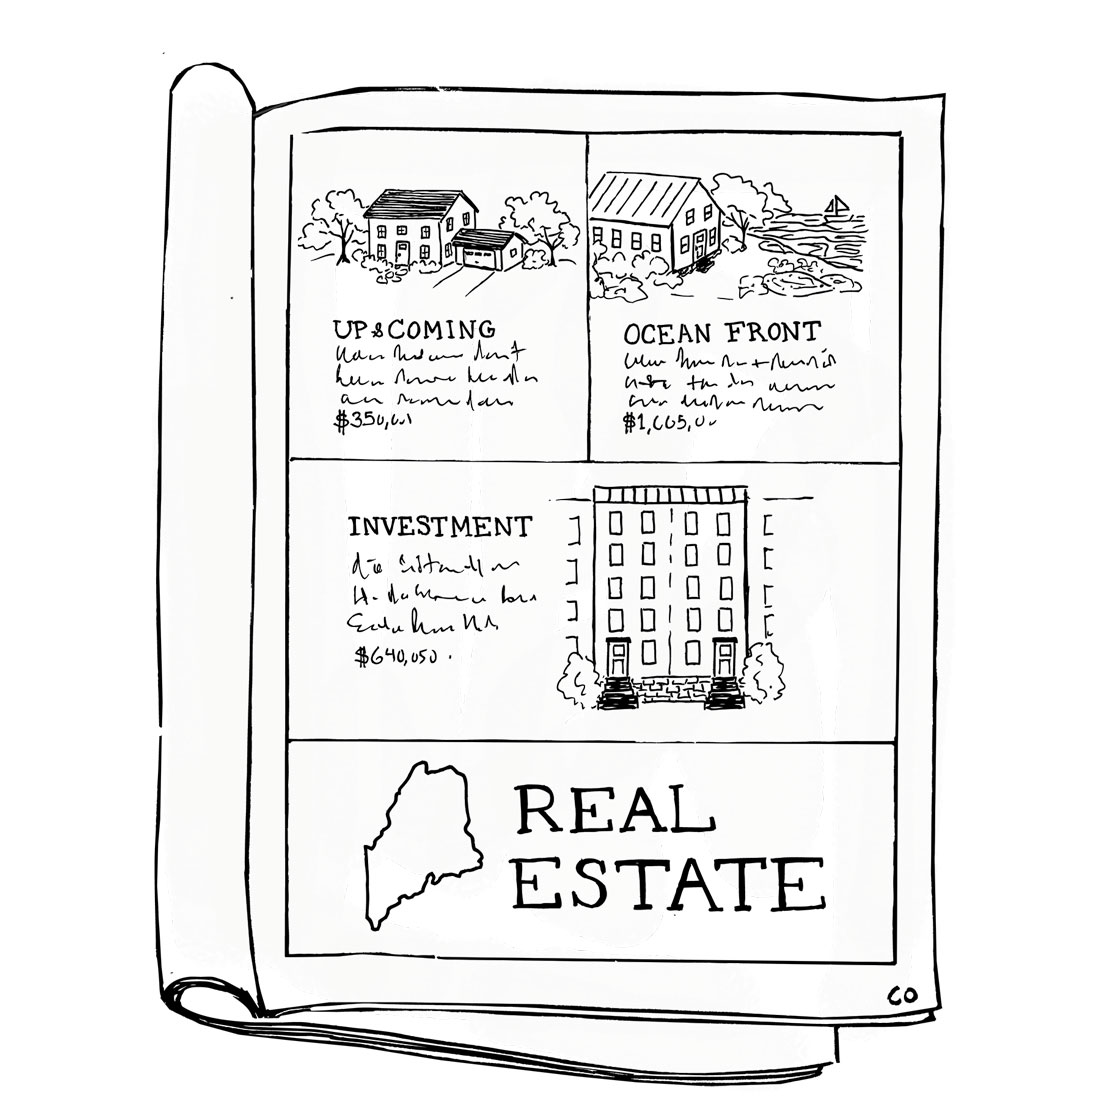 What are some lesser-known towns where you would recommend investing in real estate?